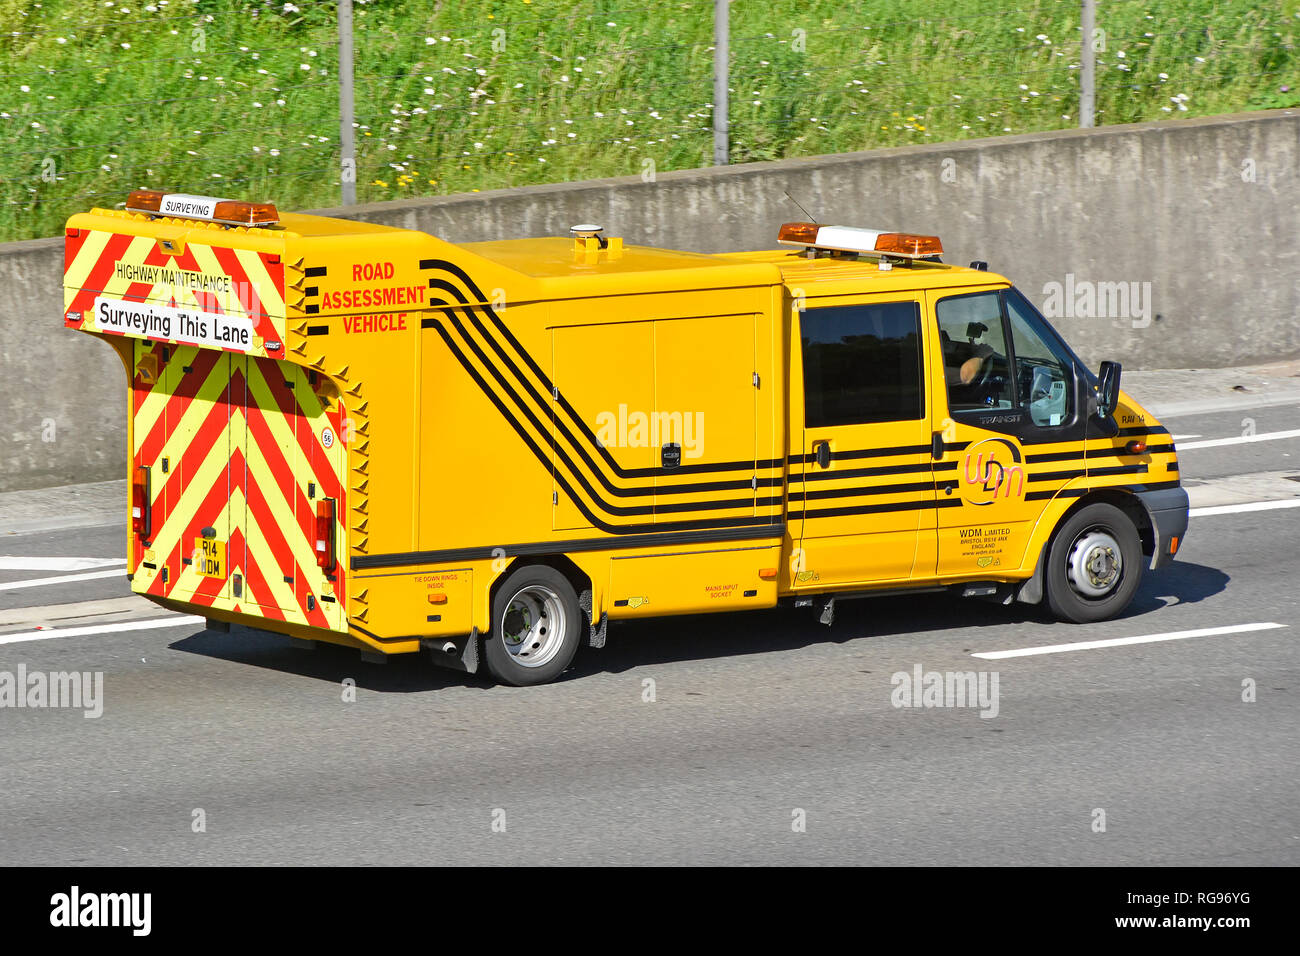 Specialised road surveying assessment vehicle for survey & recording of road surfaces to help prioritise maintenance work seen driving on UK motorway Stock Photo